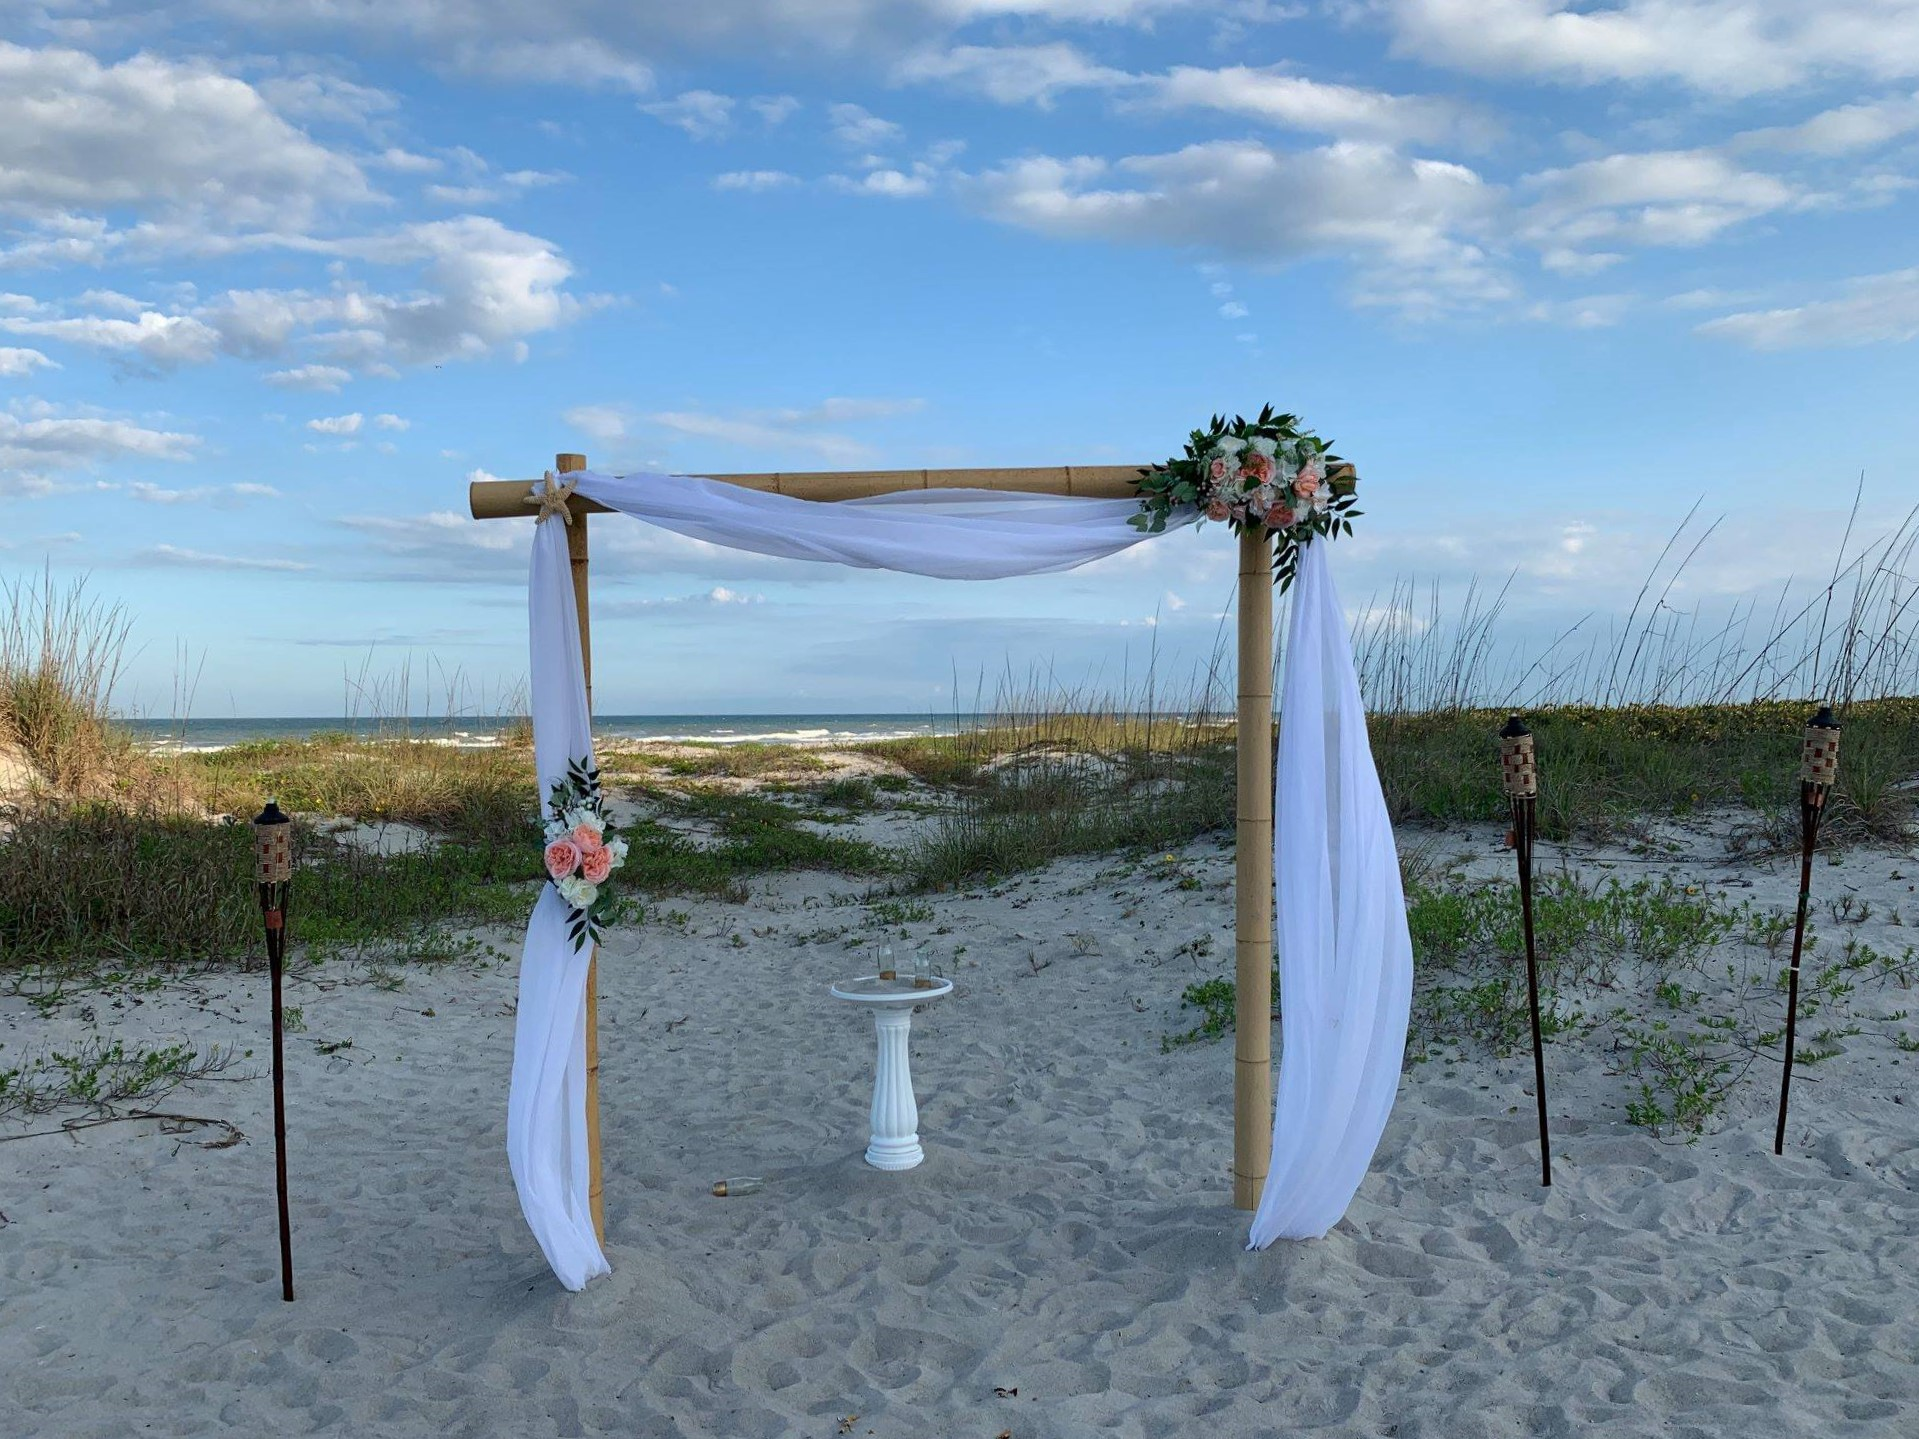 Photo of a wedding ceremony space